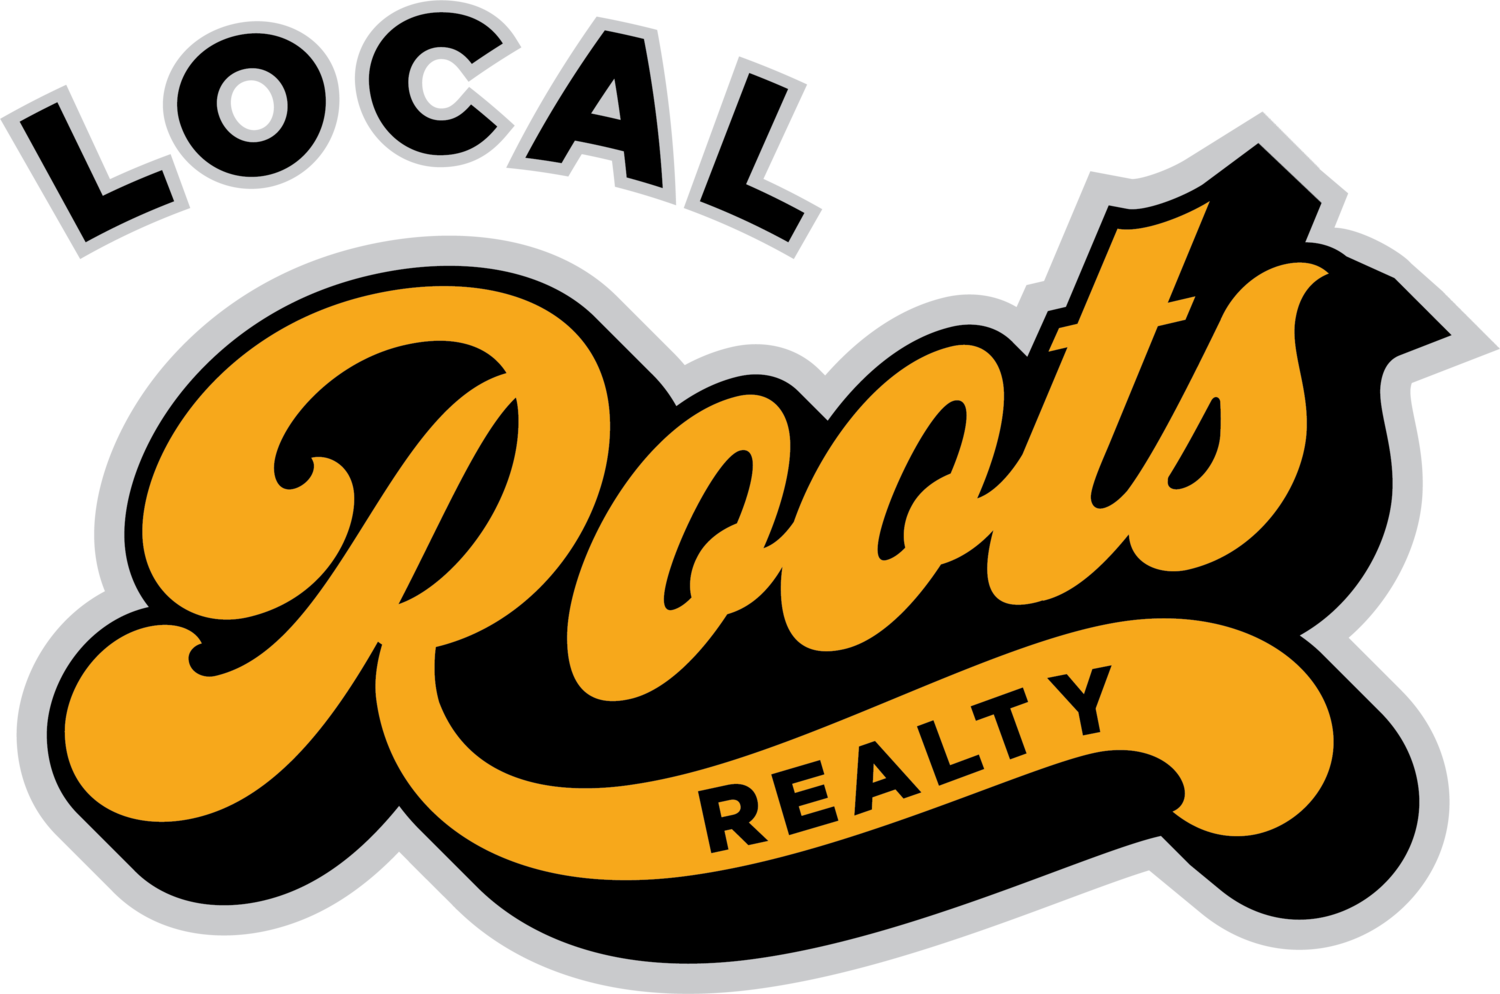 Our listings local roots. Flood clipart plain land